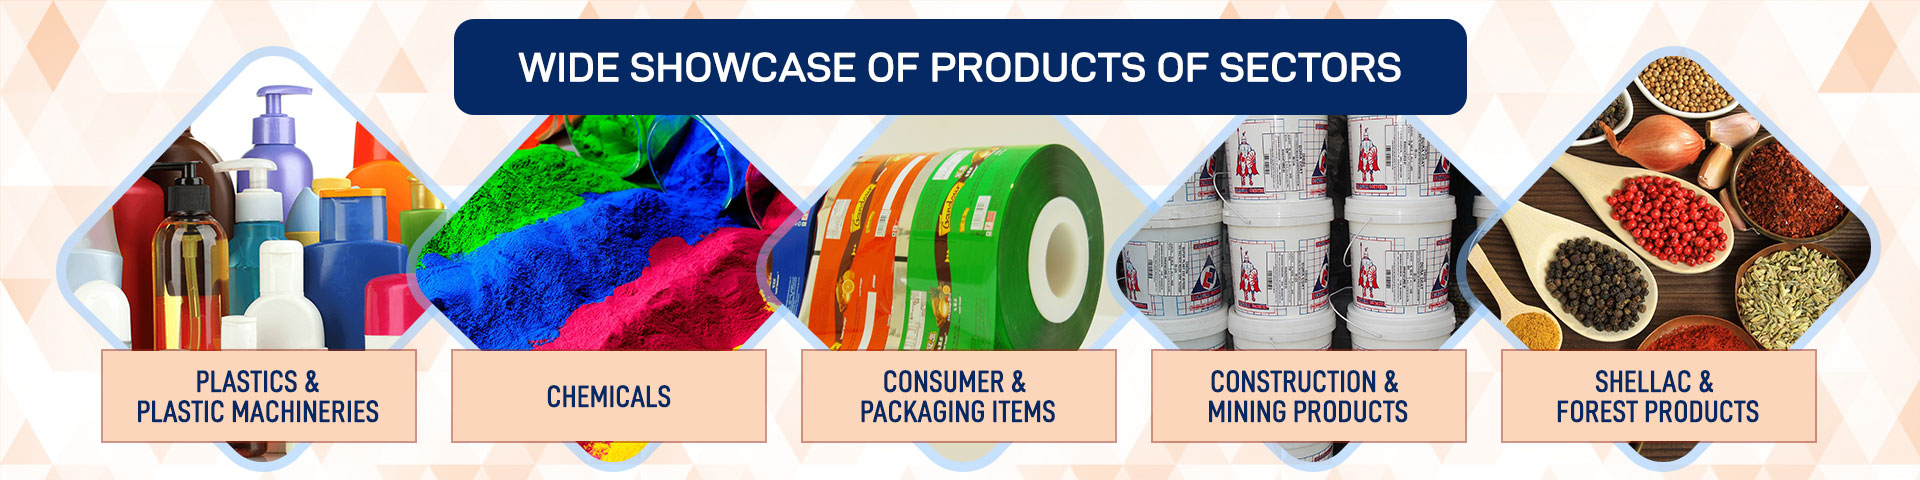 Plastics, Chemicals, Construction & Mining, Shellac, Forest & Allied Products